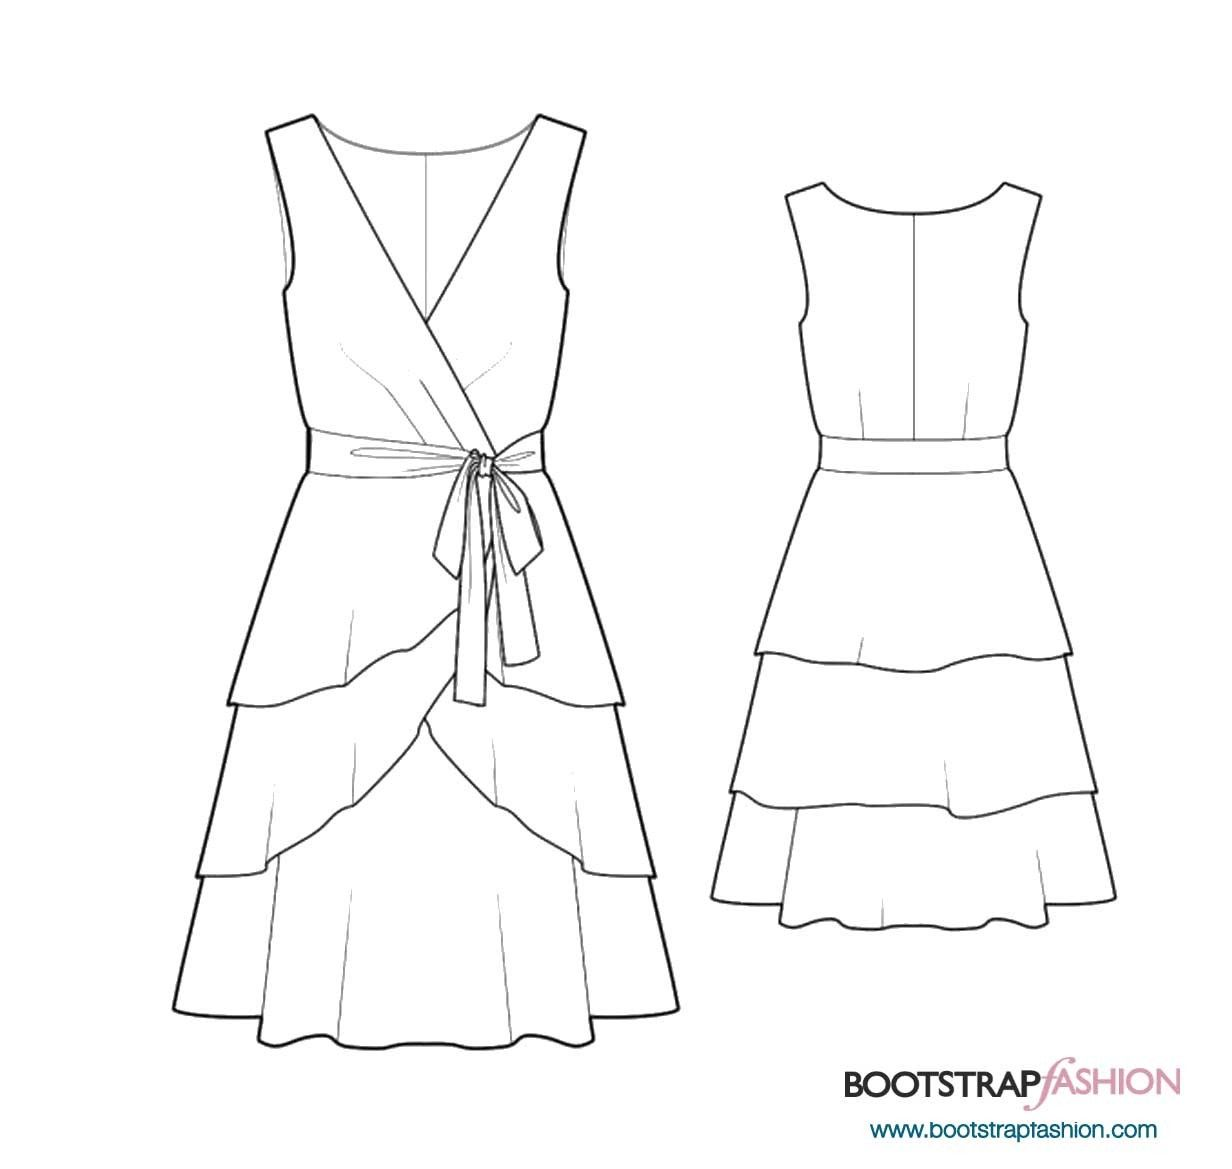 Custom-Fit Sewing Patterns - Dress With 3-Layered Skirt | Robes ...